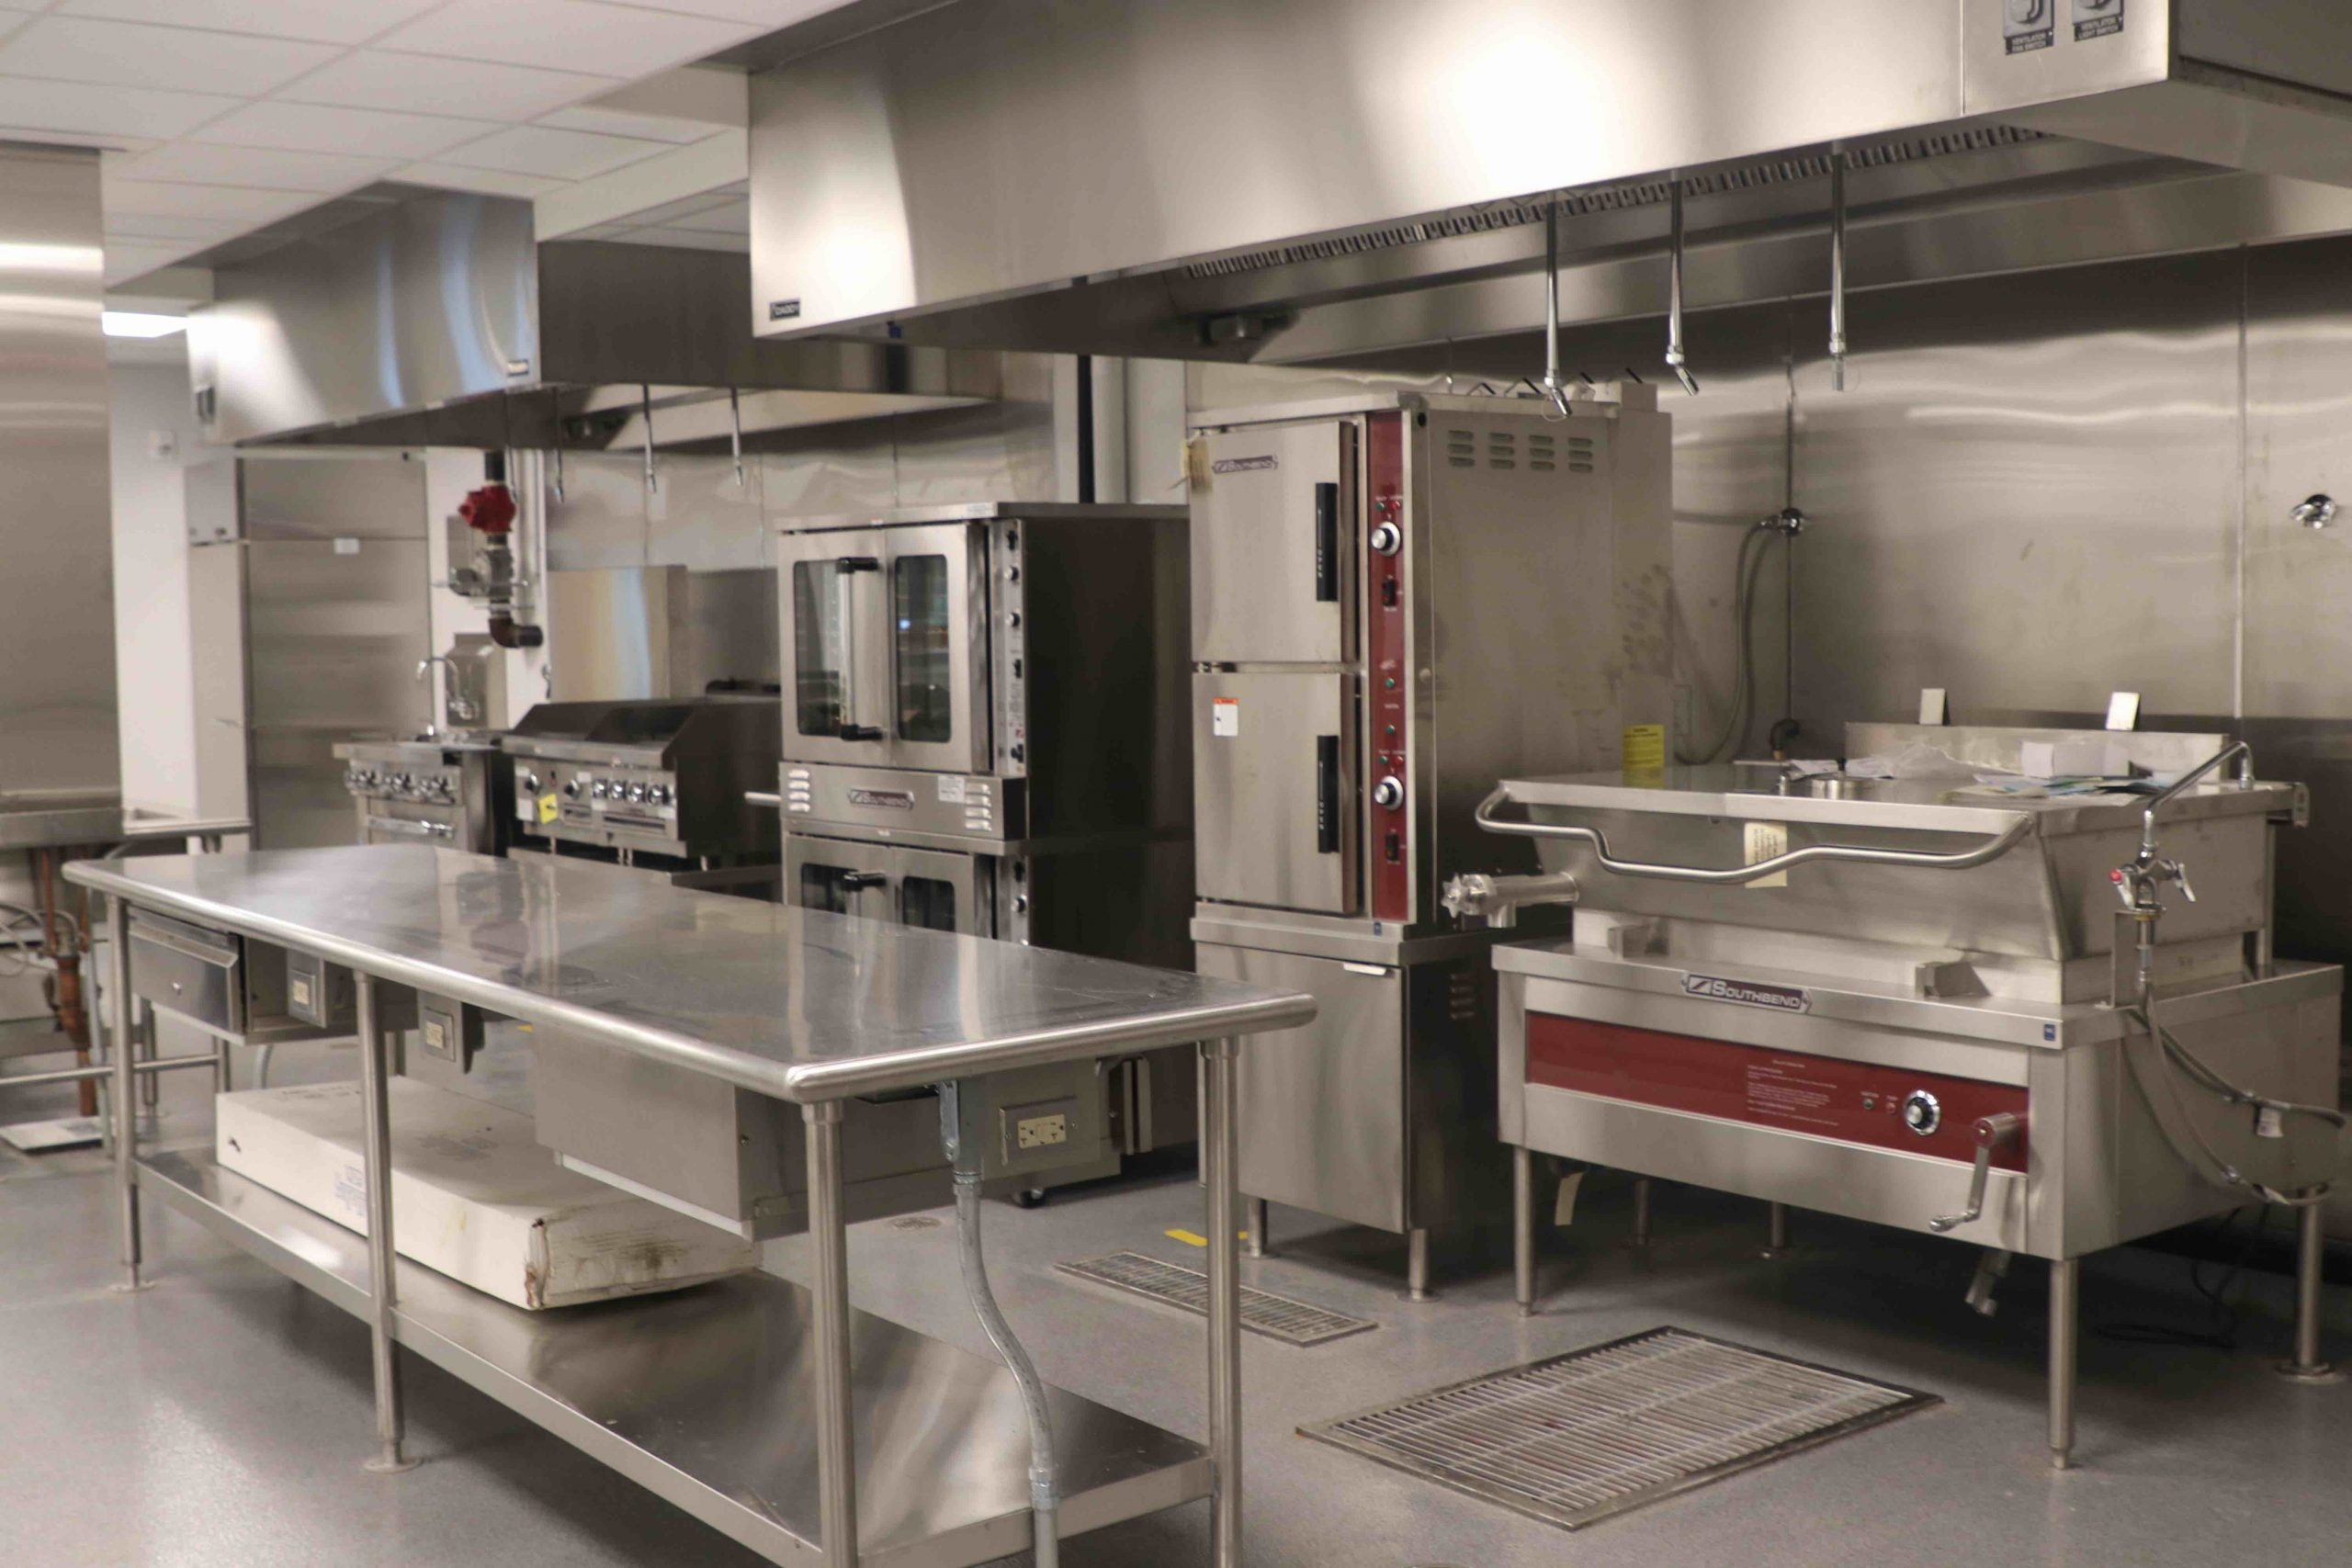 Newly-Built Teaching Kitchen